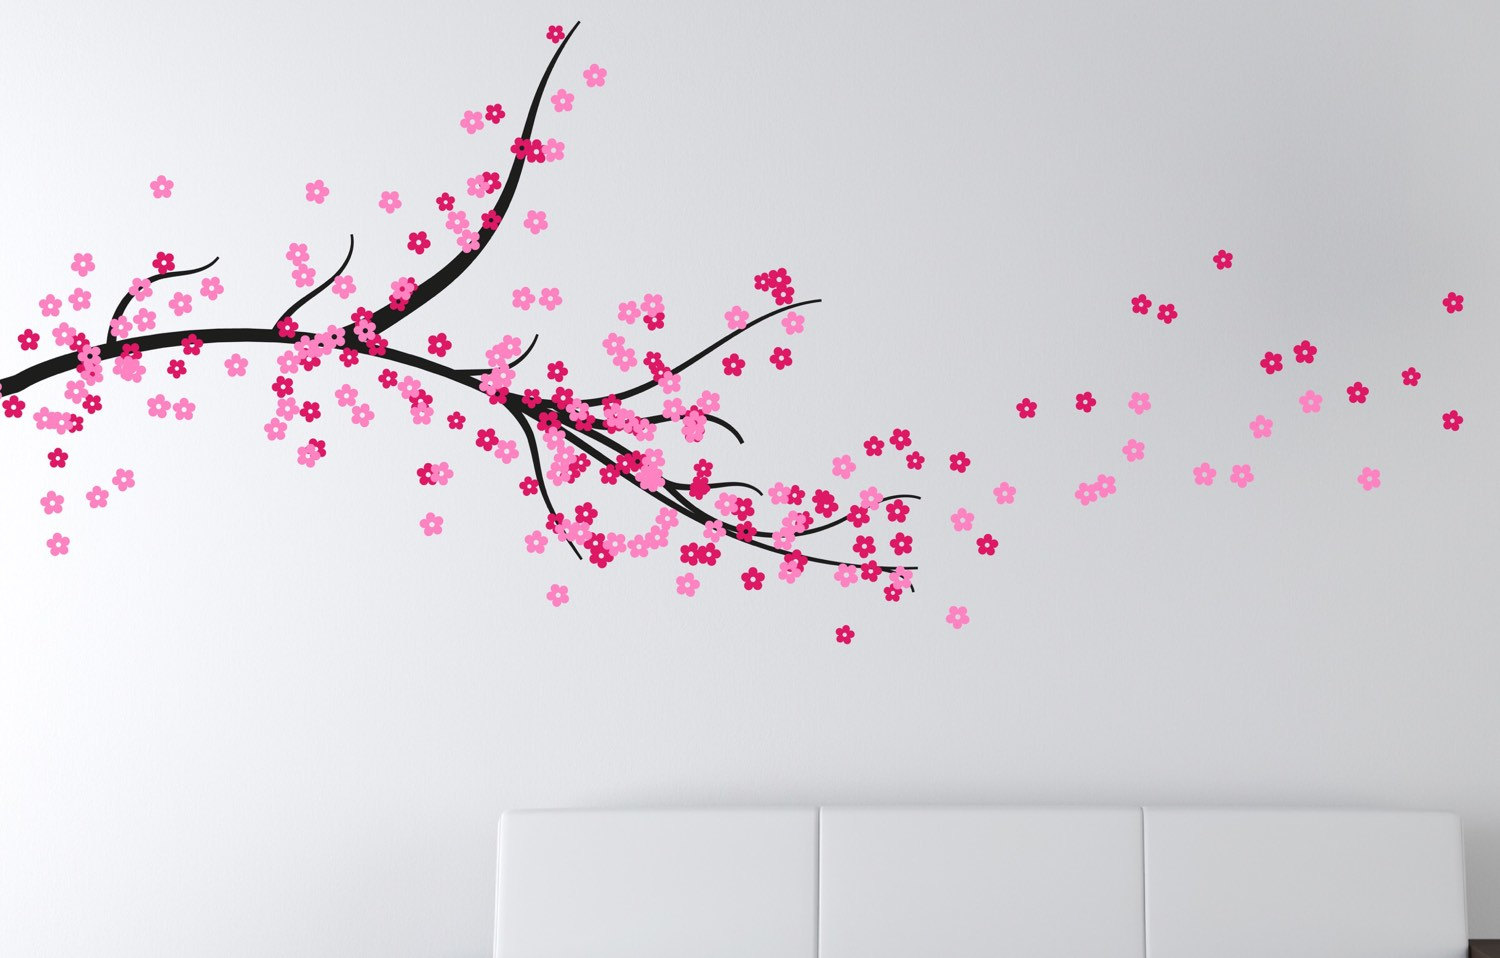 Wall Stickers Designs Cherry Blossom Tree Branch Stunning Wall Designs And